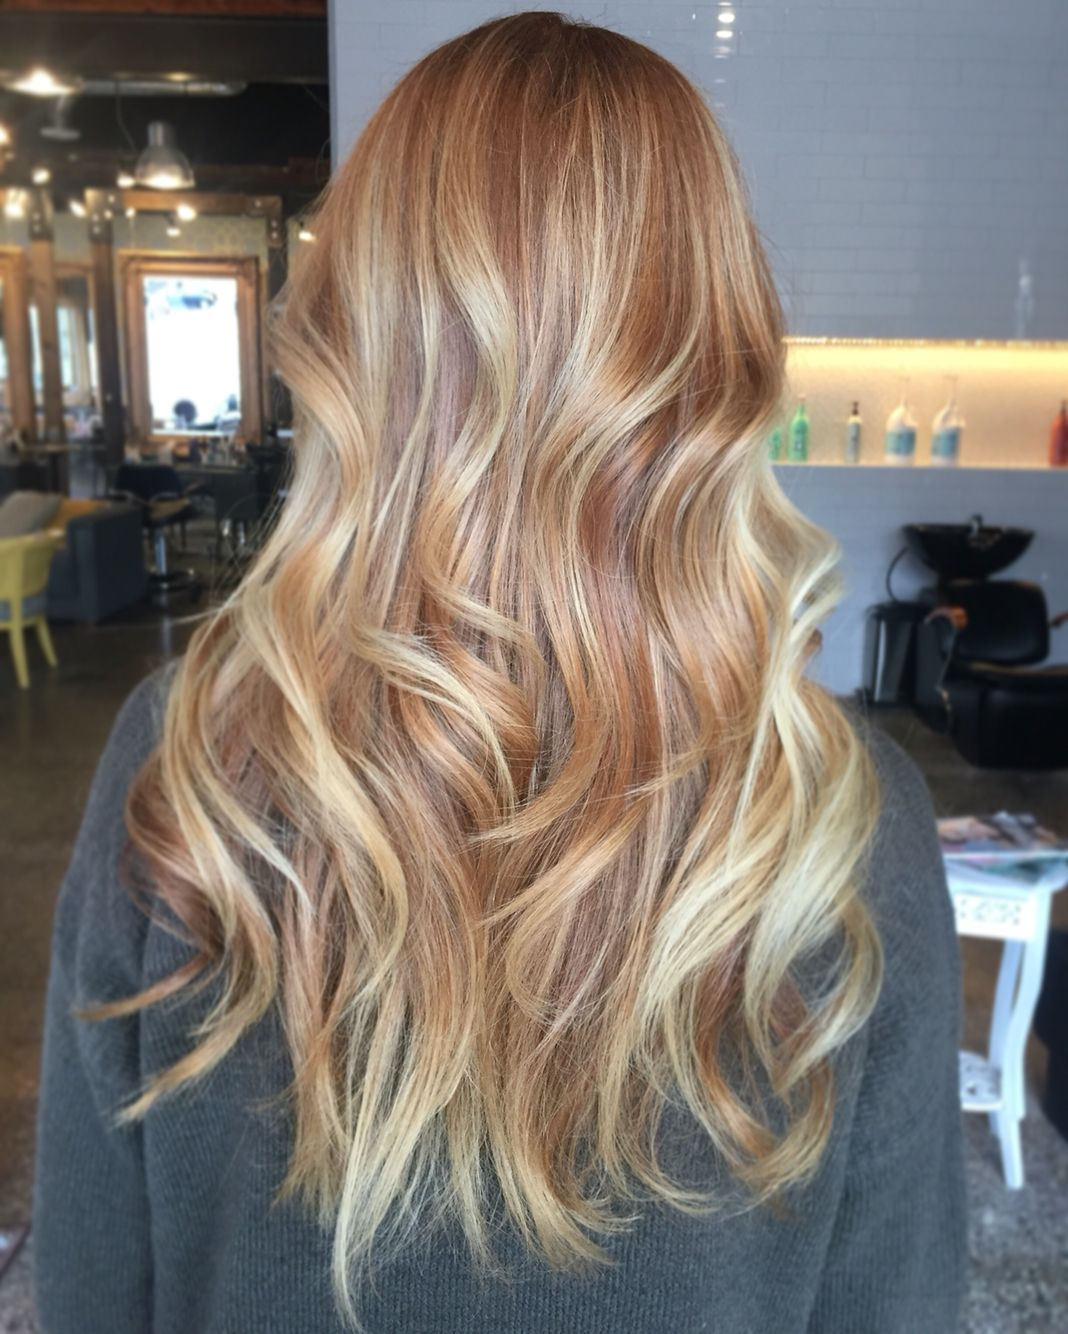 27 Yummiest Strawberry Blonde Hair Colors to Try Today 27 Yummiest Strawberry Blonde Hair Colors to Try Today new pictures